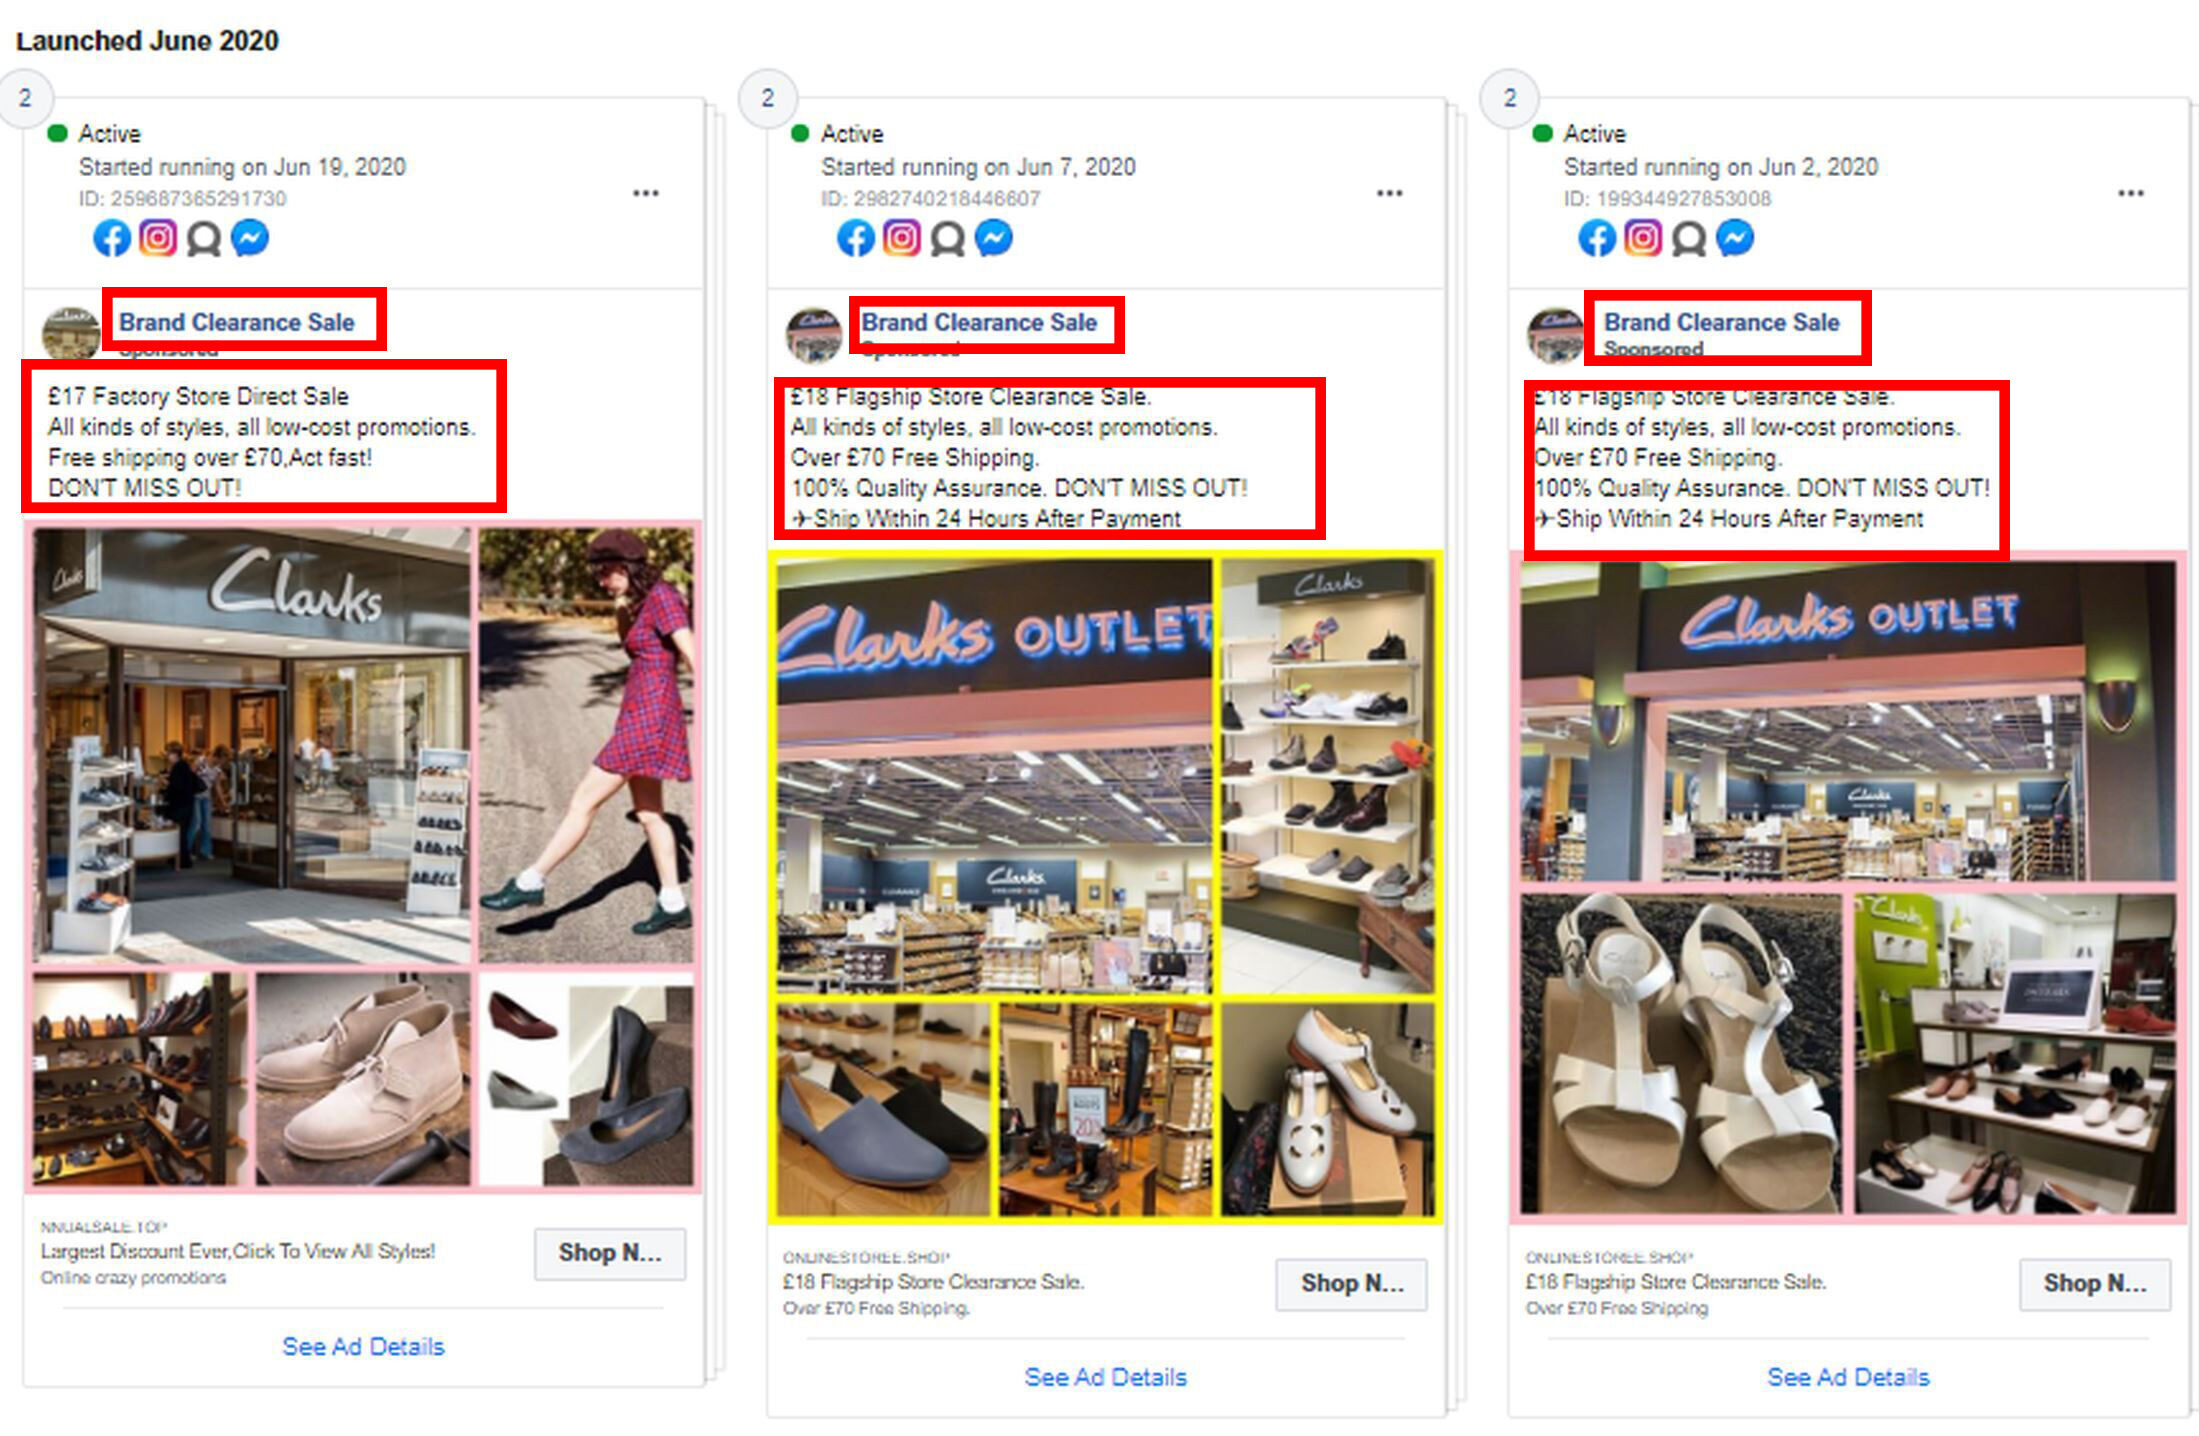 Shoe retailer Clarks was also impersonated by the fake shop Brand Store Clearance Online